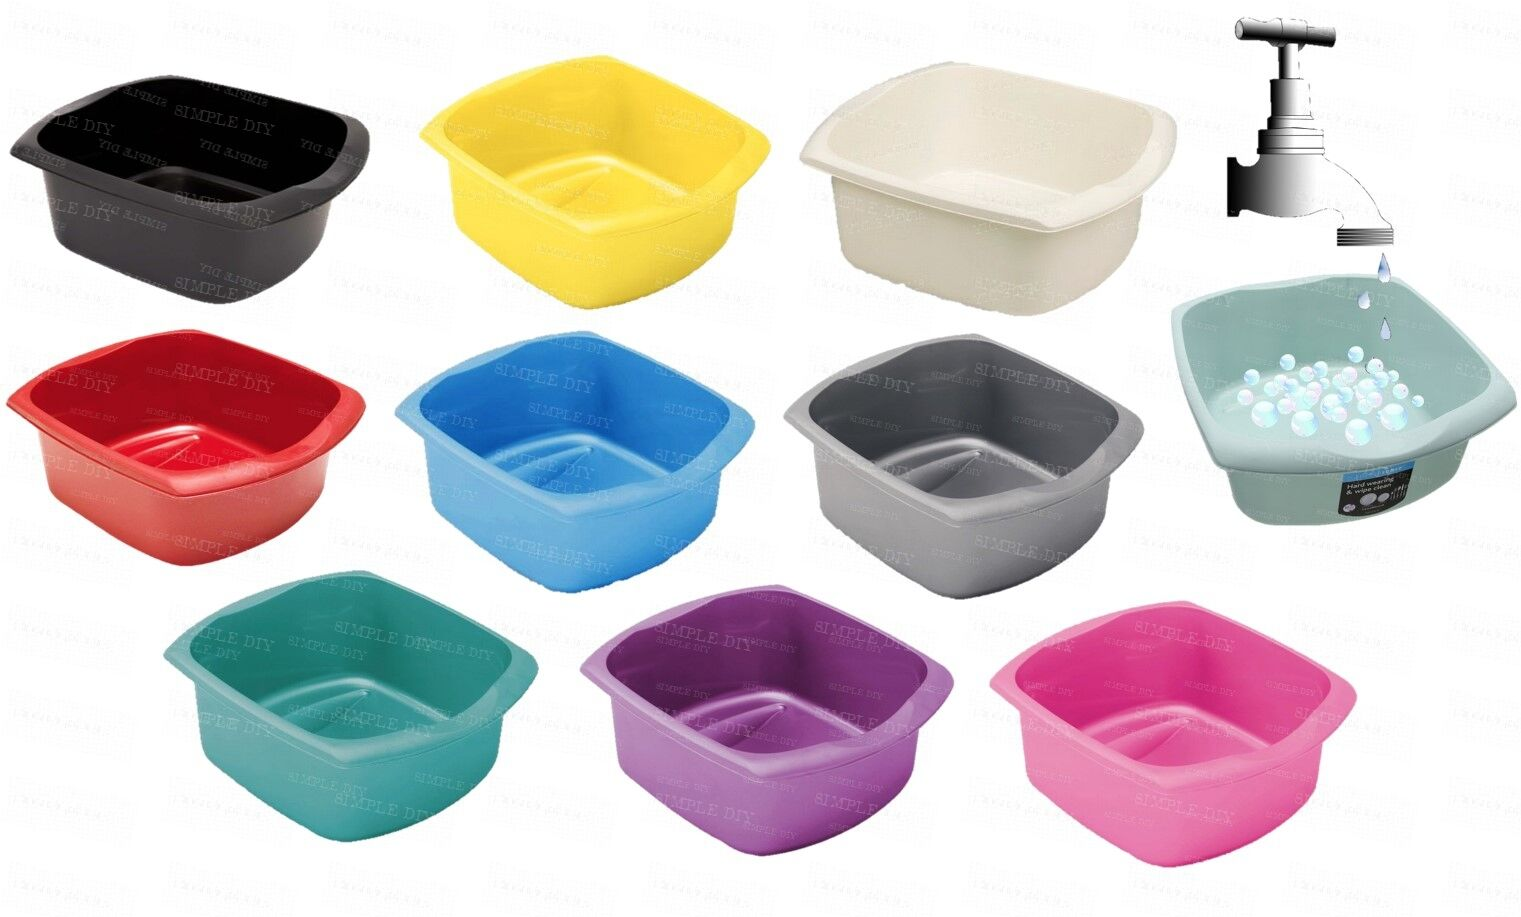 Addis Large Washing Up Bowl Oblong Kitchen Sink Tub Plastic Wash Coloured Bowls 1 Of 1free Shipping See More